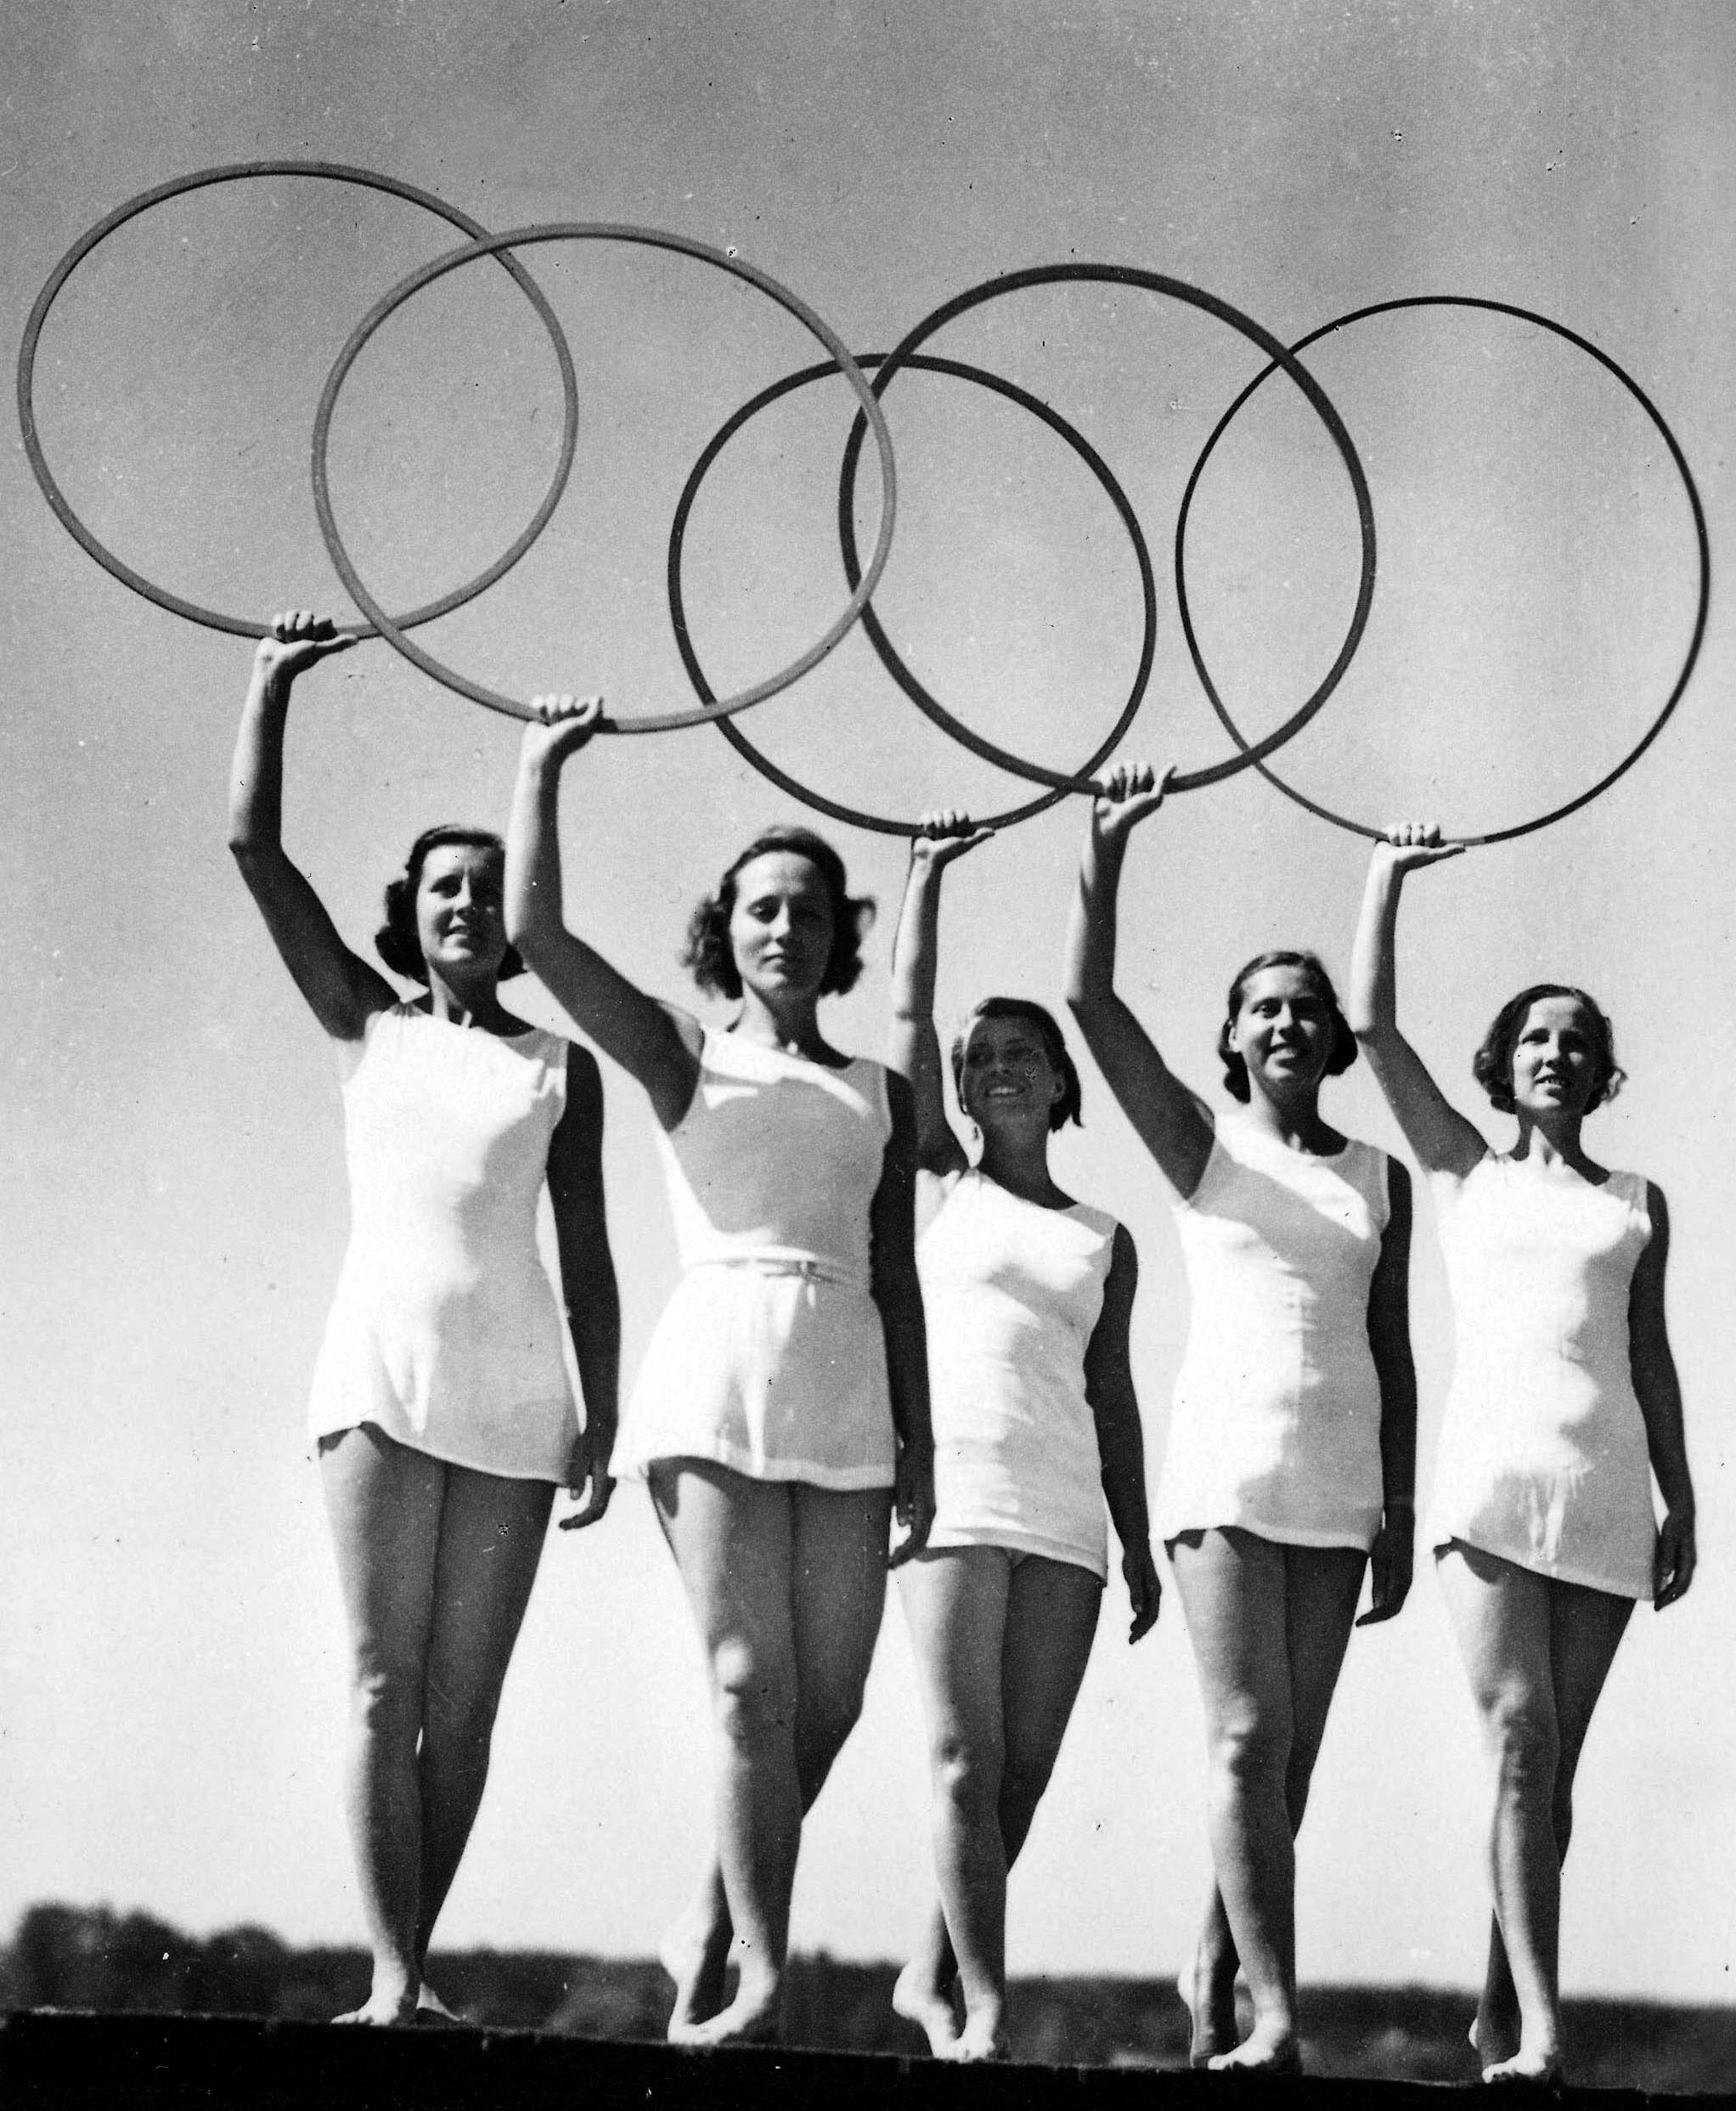 Five young women take part in a display of the Olympic Rings at the 1936 Olympic Games in  Berlin